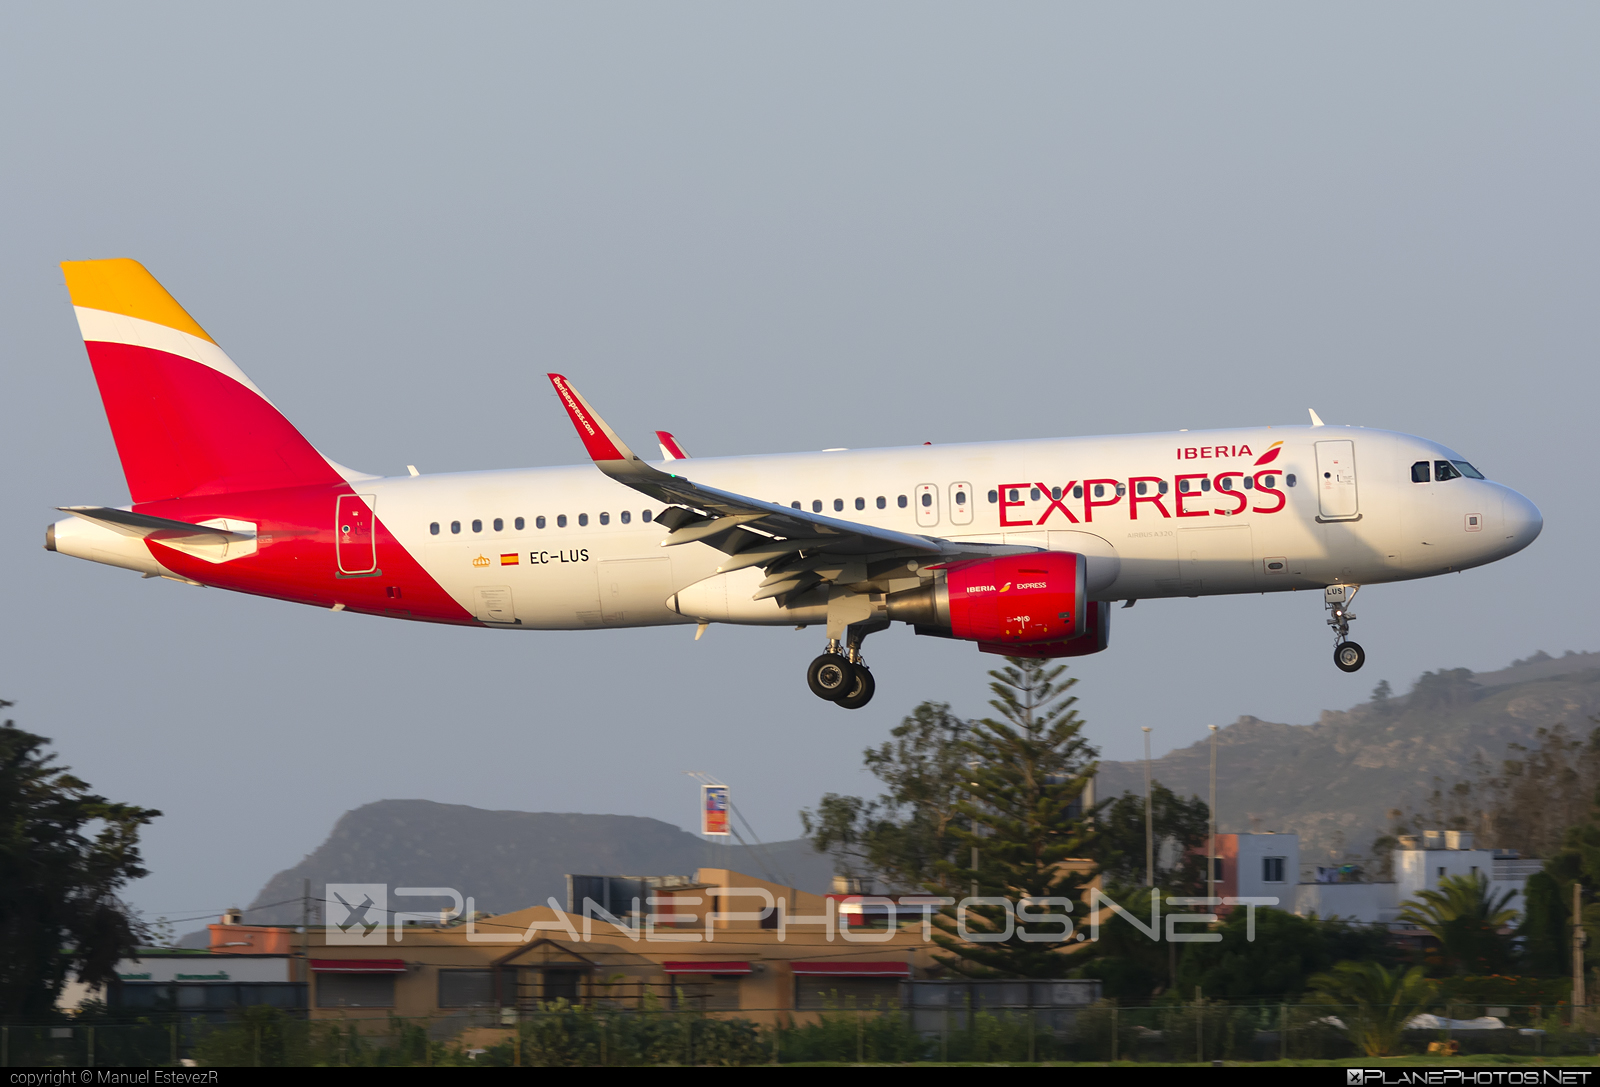 Airbus A320-216 - EC-LUS operated by Iberia Express #a320 #a320family #airbus #airbus320 #iberia #iberiaexpress